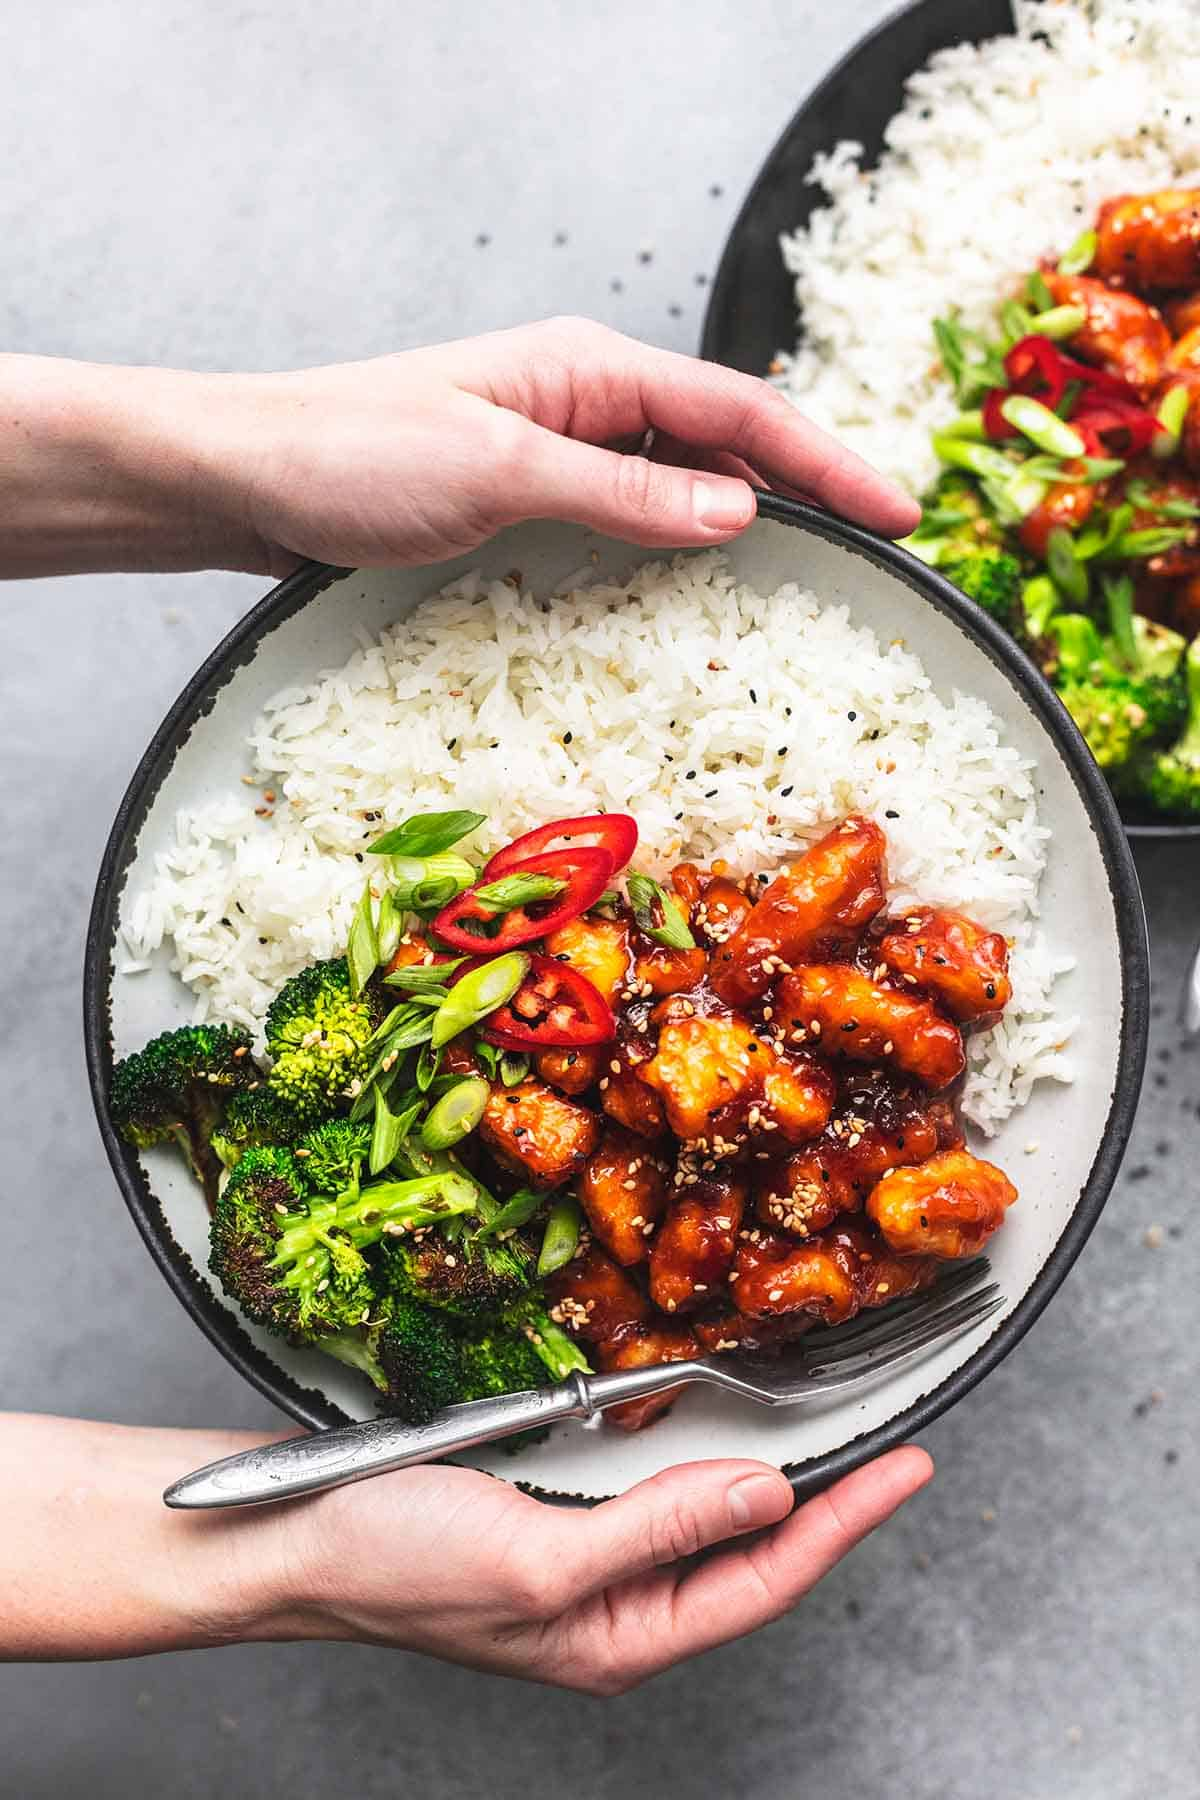 top view of hands holding a plate of sticky sesame chicken with rice and veggies with another plate on the side.